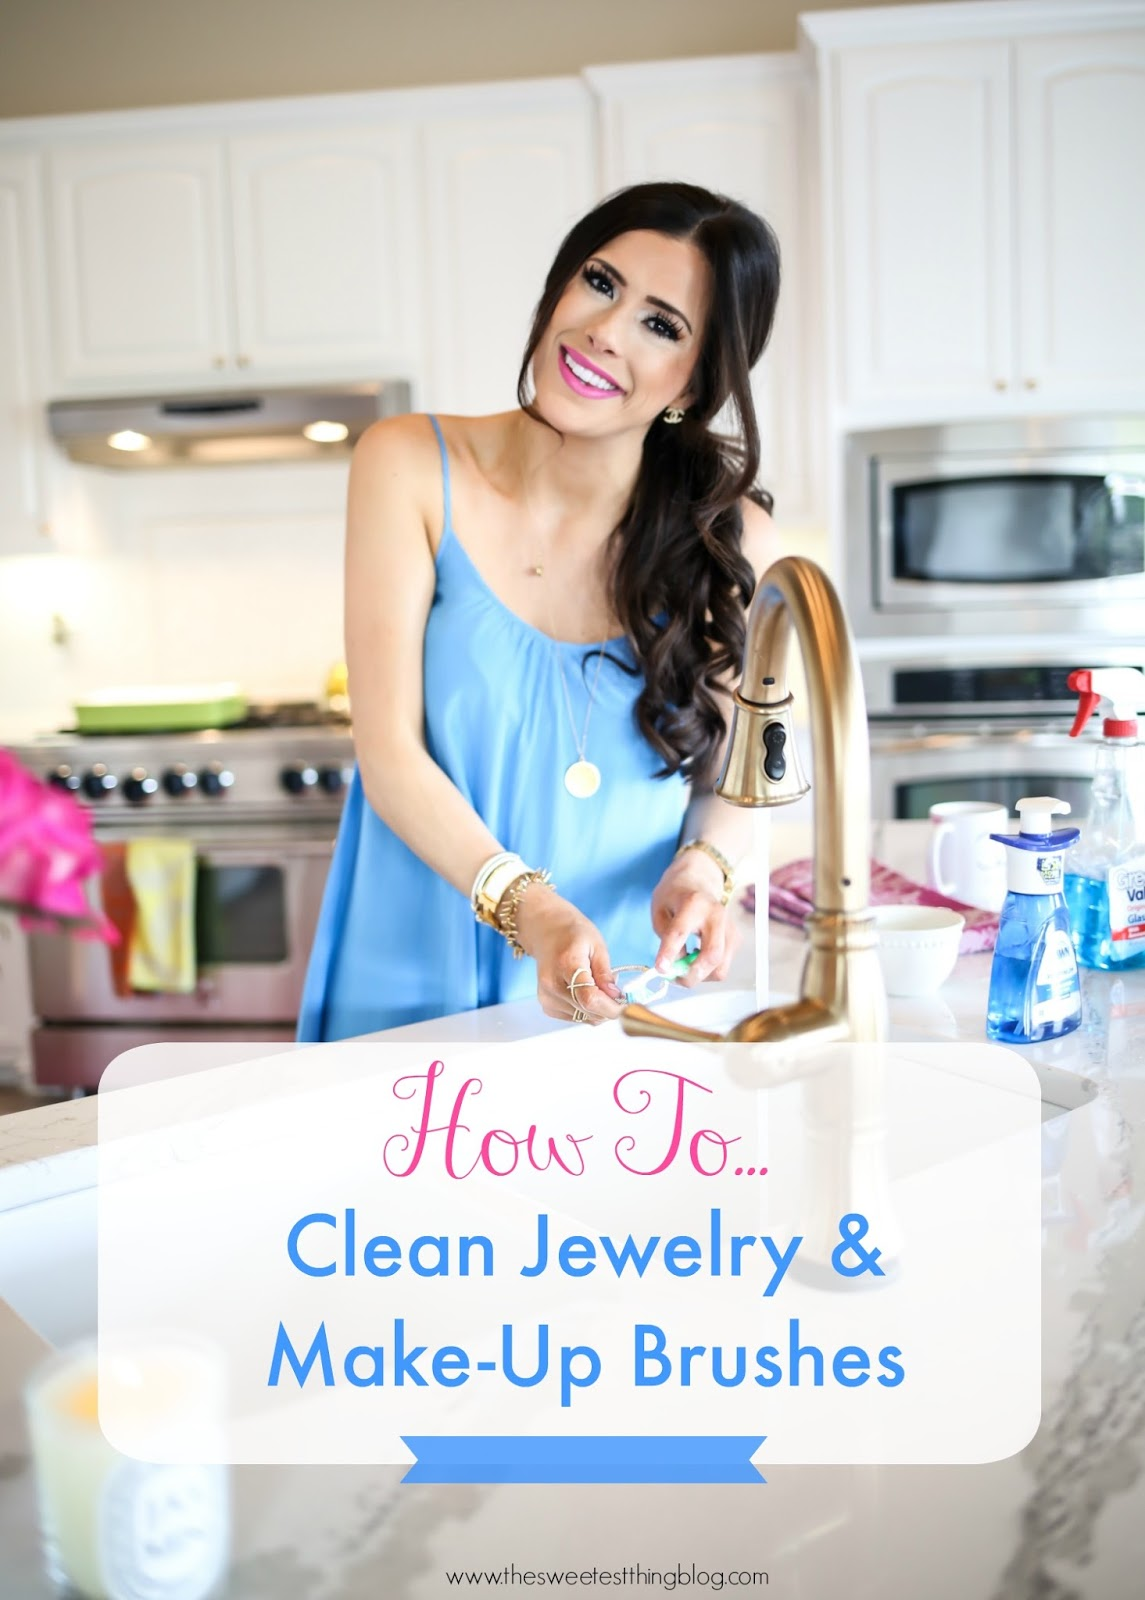 How To Clean Jewelry MakeUp Brushes w Products in Your Kitchen